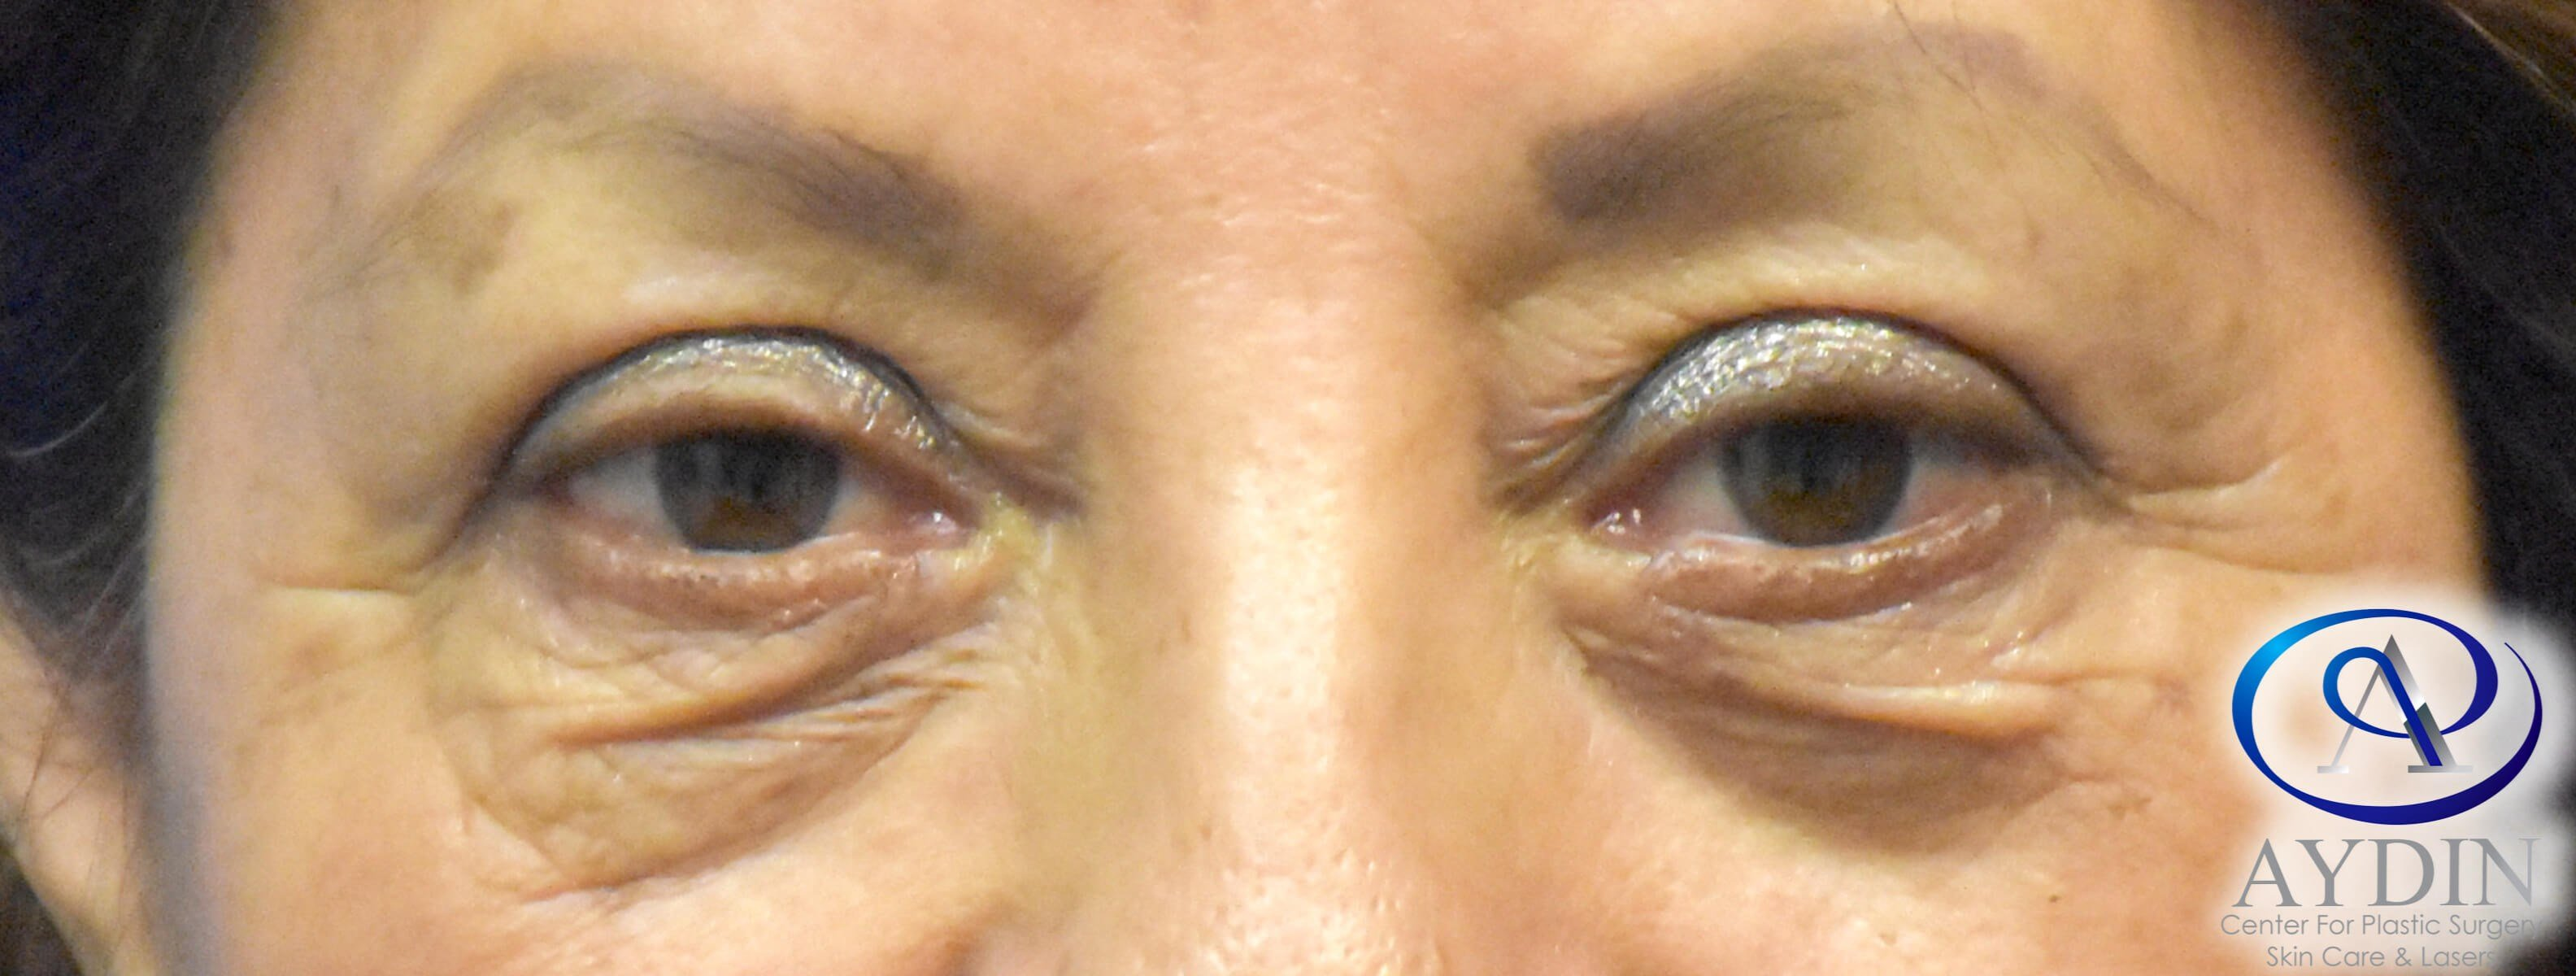 Blepharoplasty Before & After Before